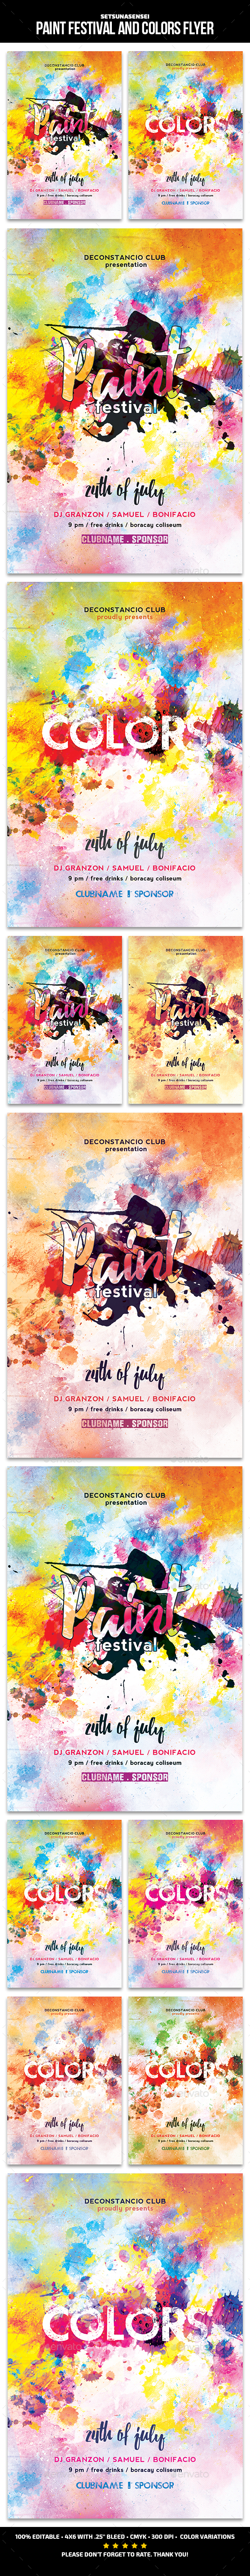 Paint Festival and Colors Flyer - Events Flyers